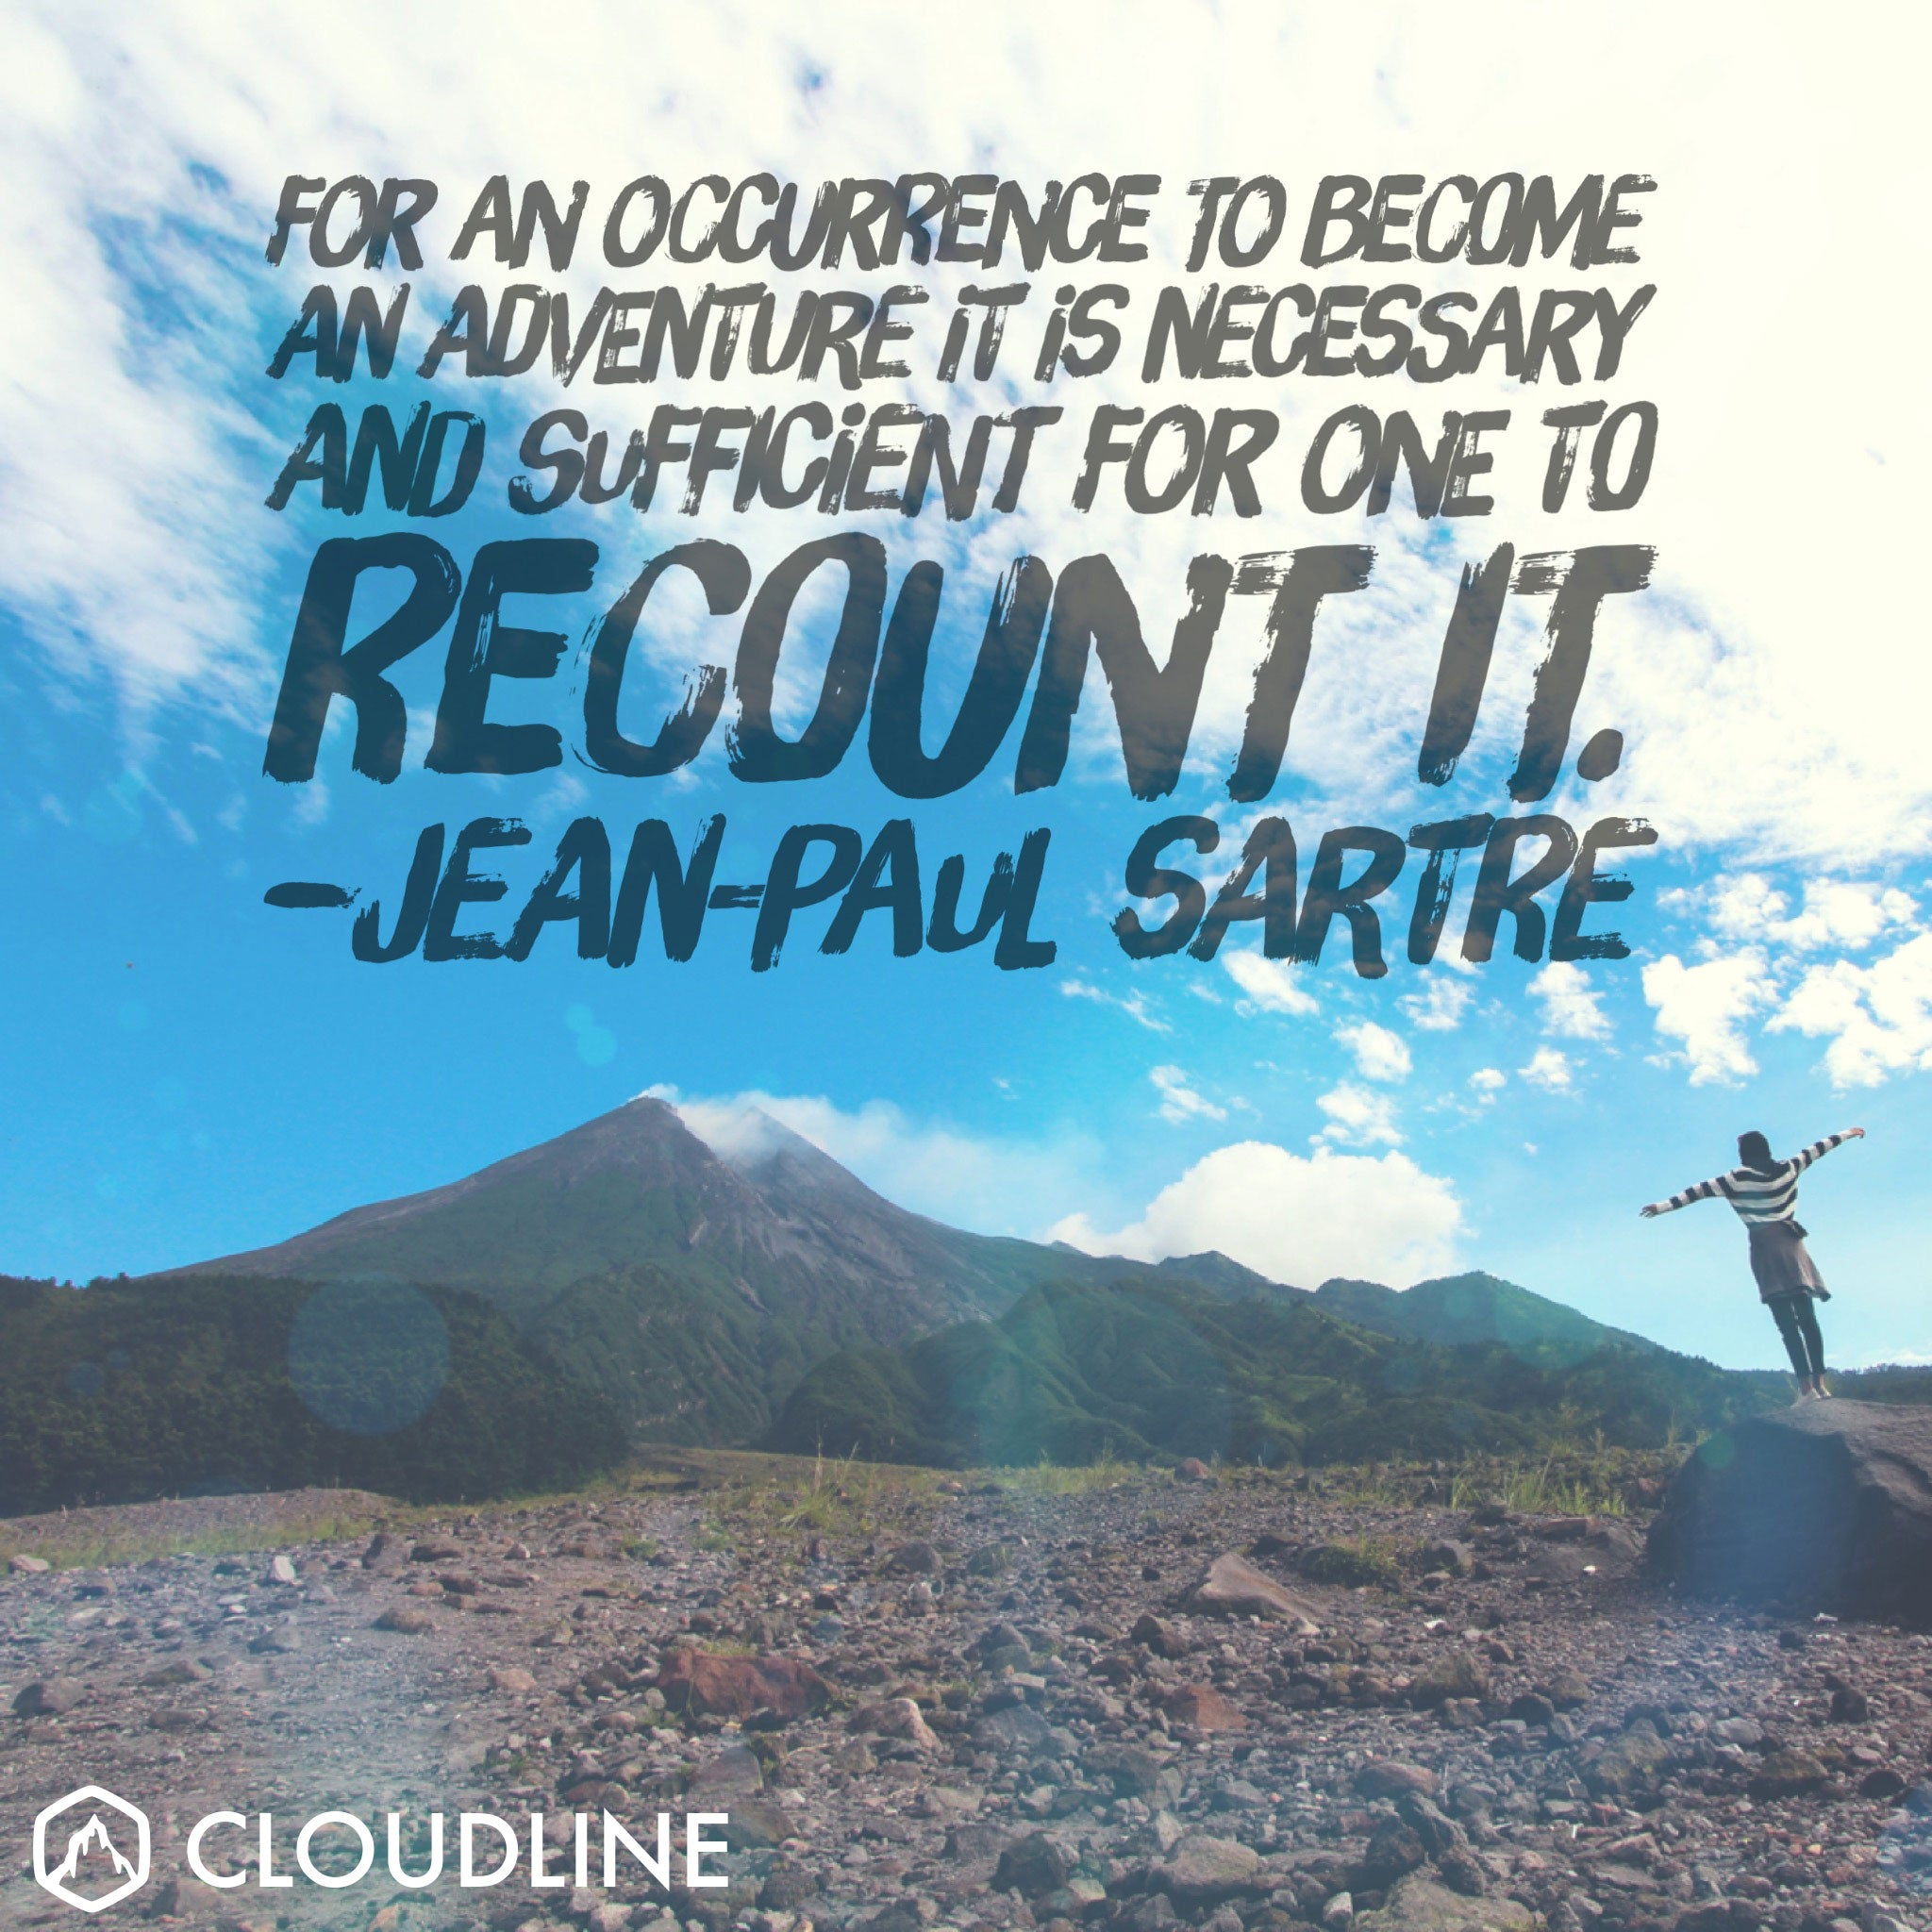 """For an occurrence to become an adventure it is necessary and sufficient for one to recount it."" - Jean-Paul Sartre"